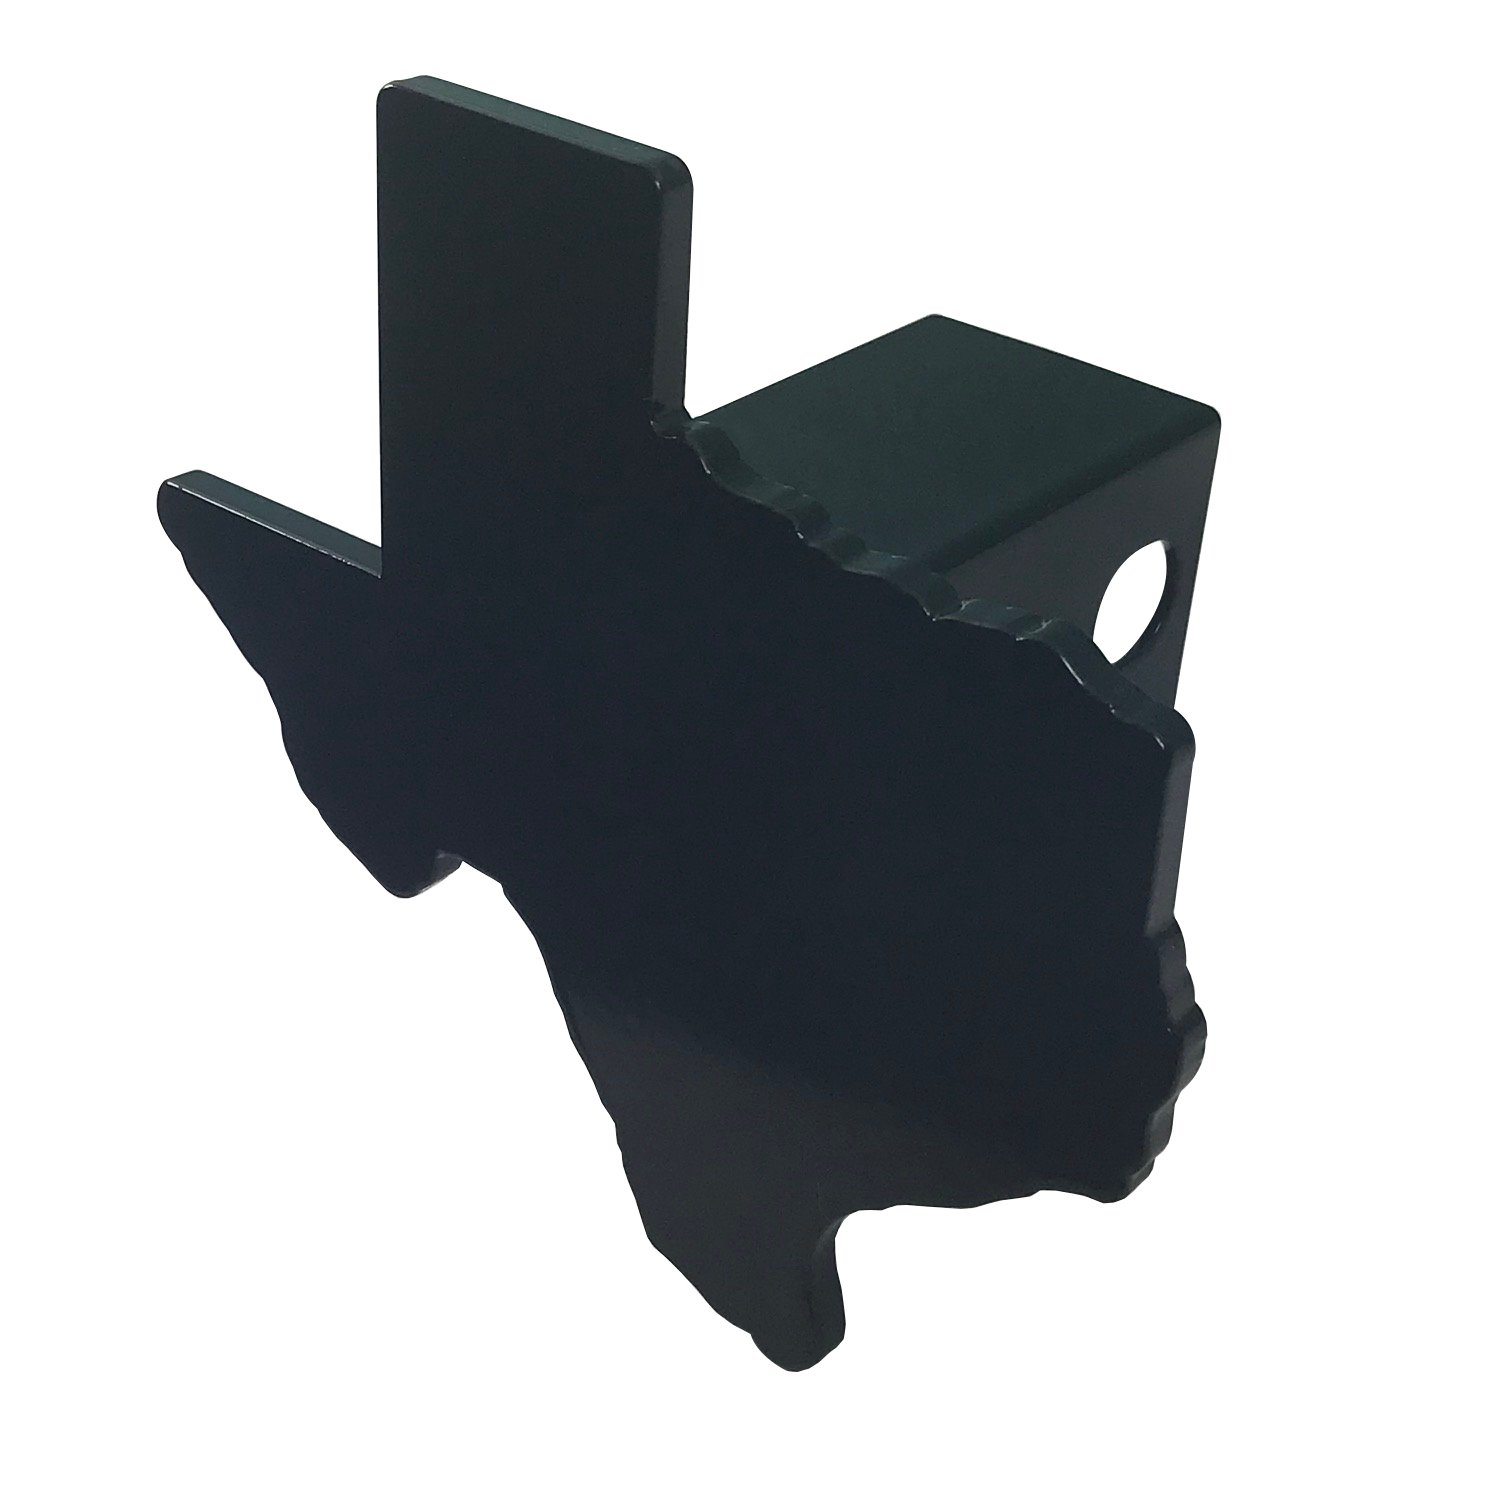 AMG Auto Emblems Premium State of Texas (Texas Shaped) SOLID METAL Heavy Duty Black Hitch Cover by AMG Auto Emblems